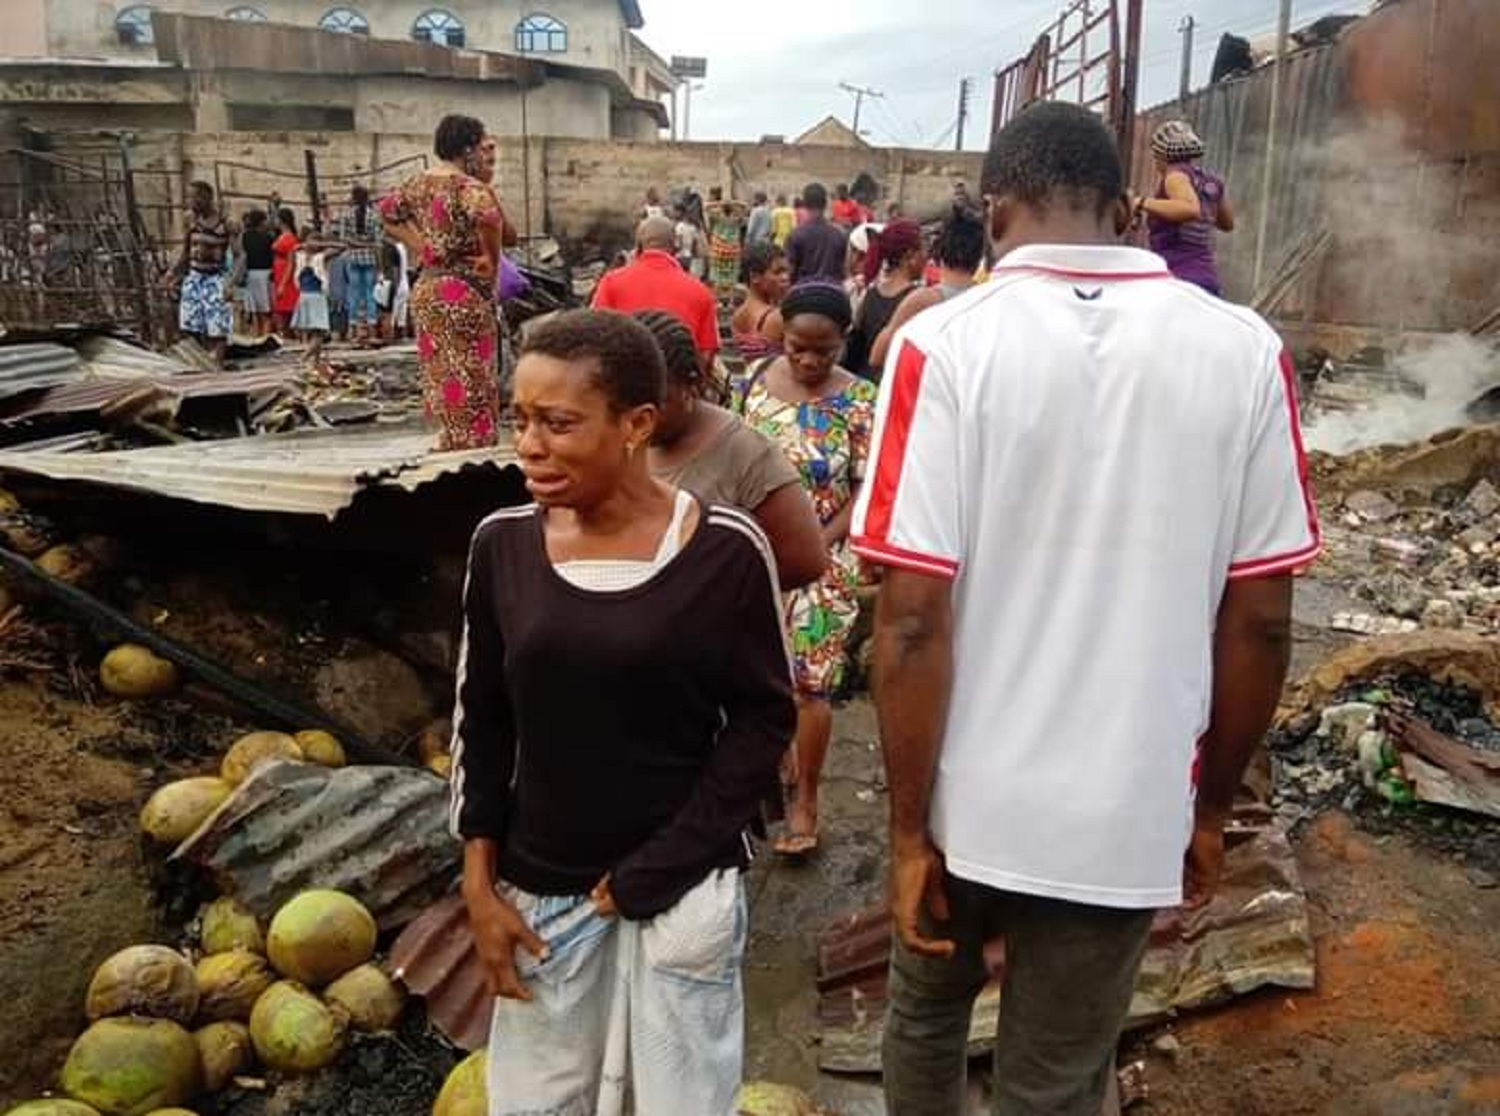 Fire guts over 100 shops, goods in Calabar market